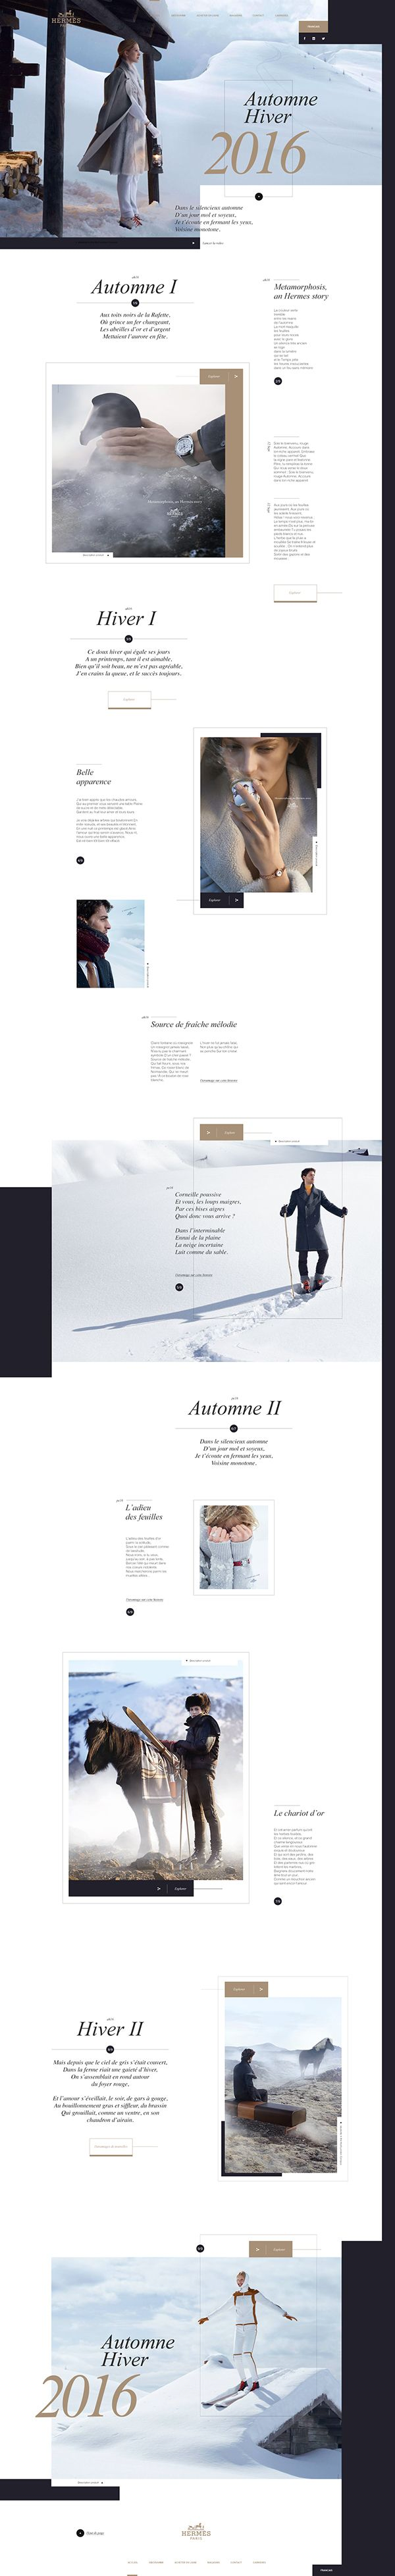 Web | Hermès Concept on Web Design Served